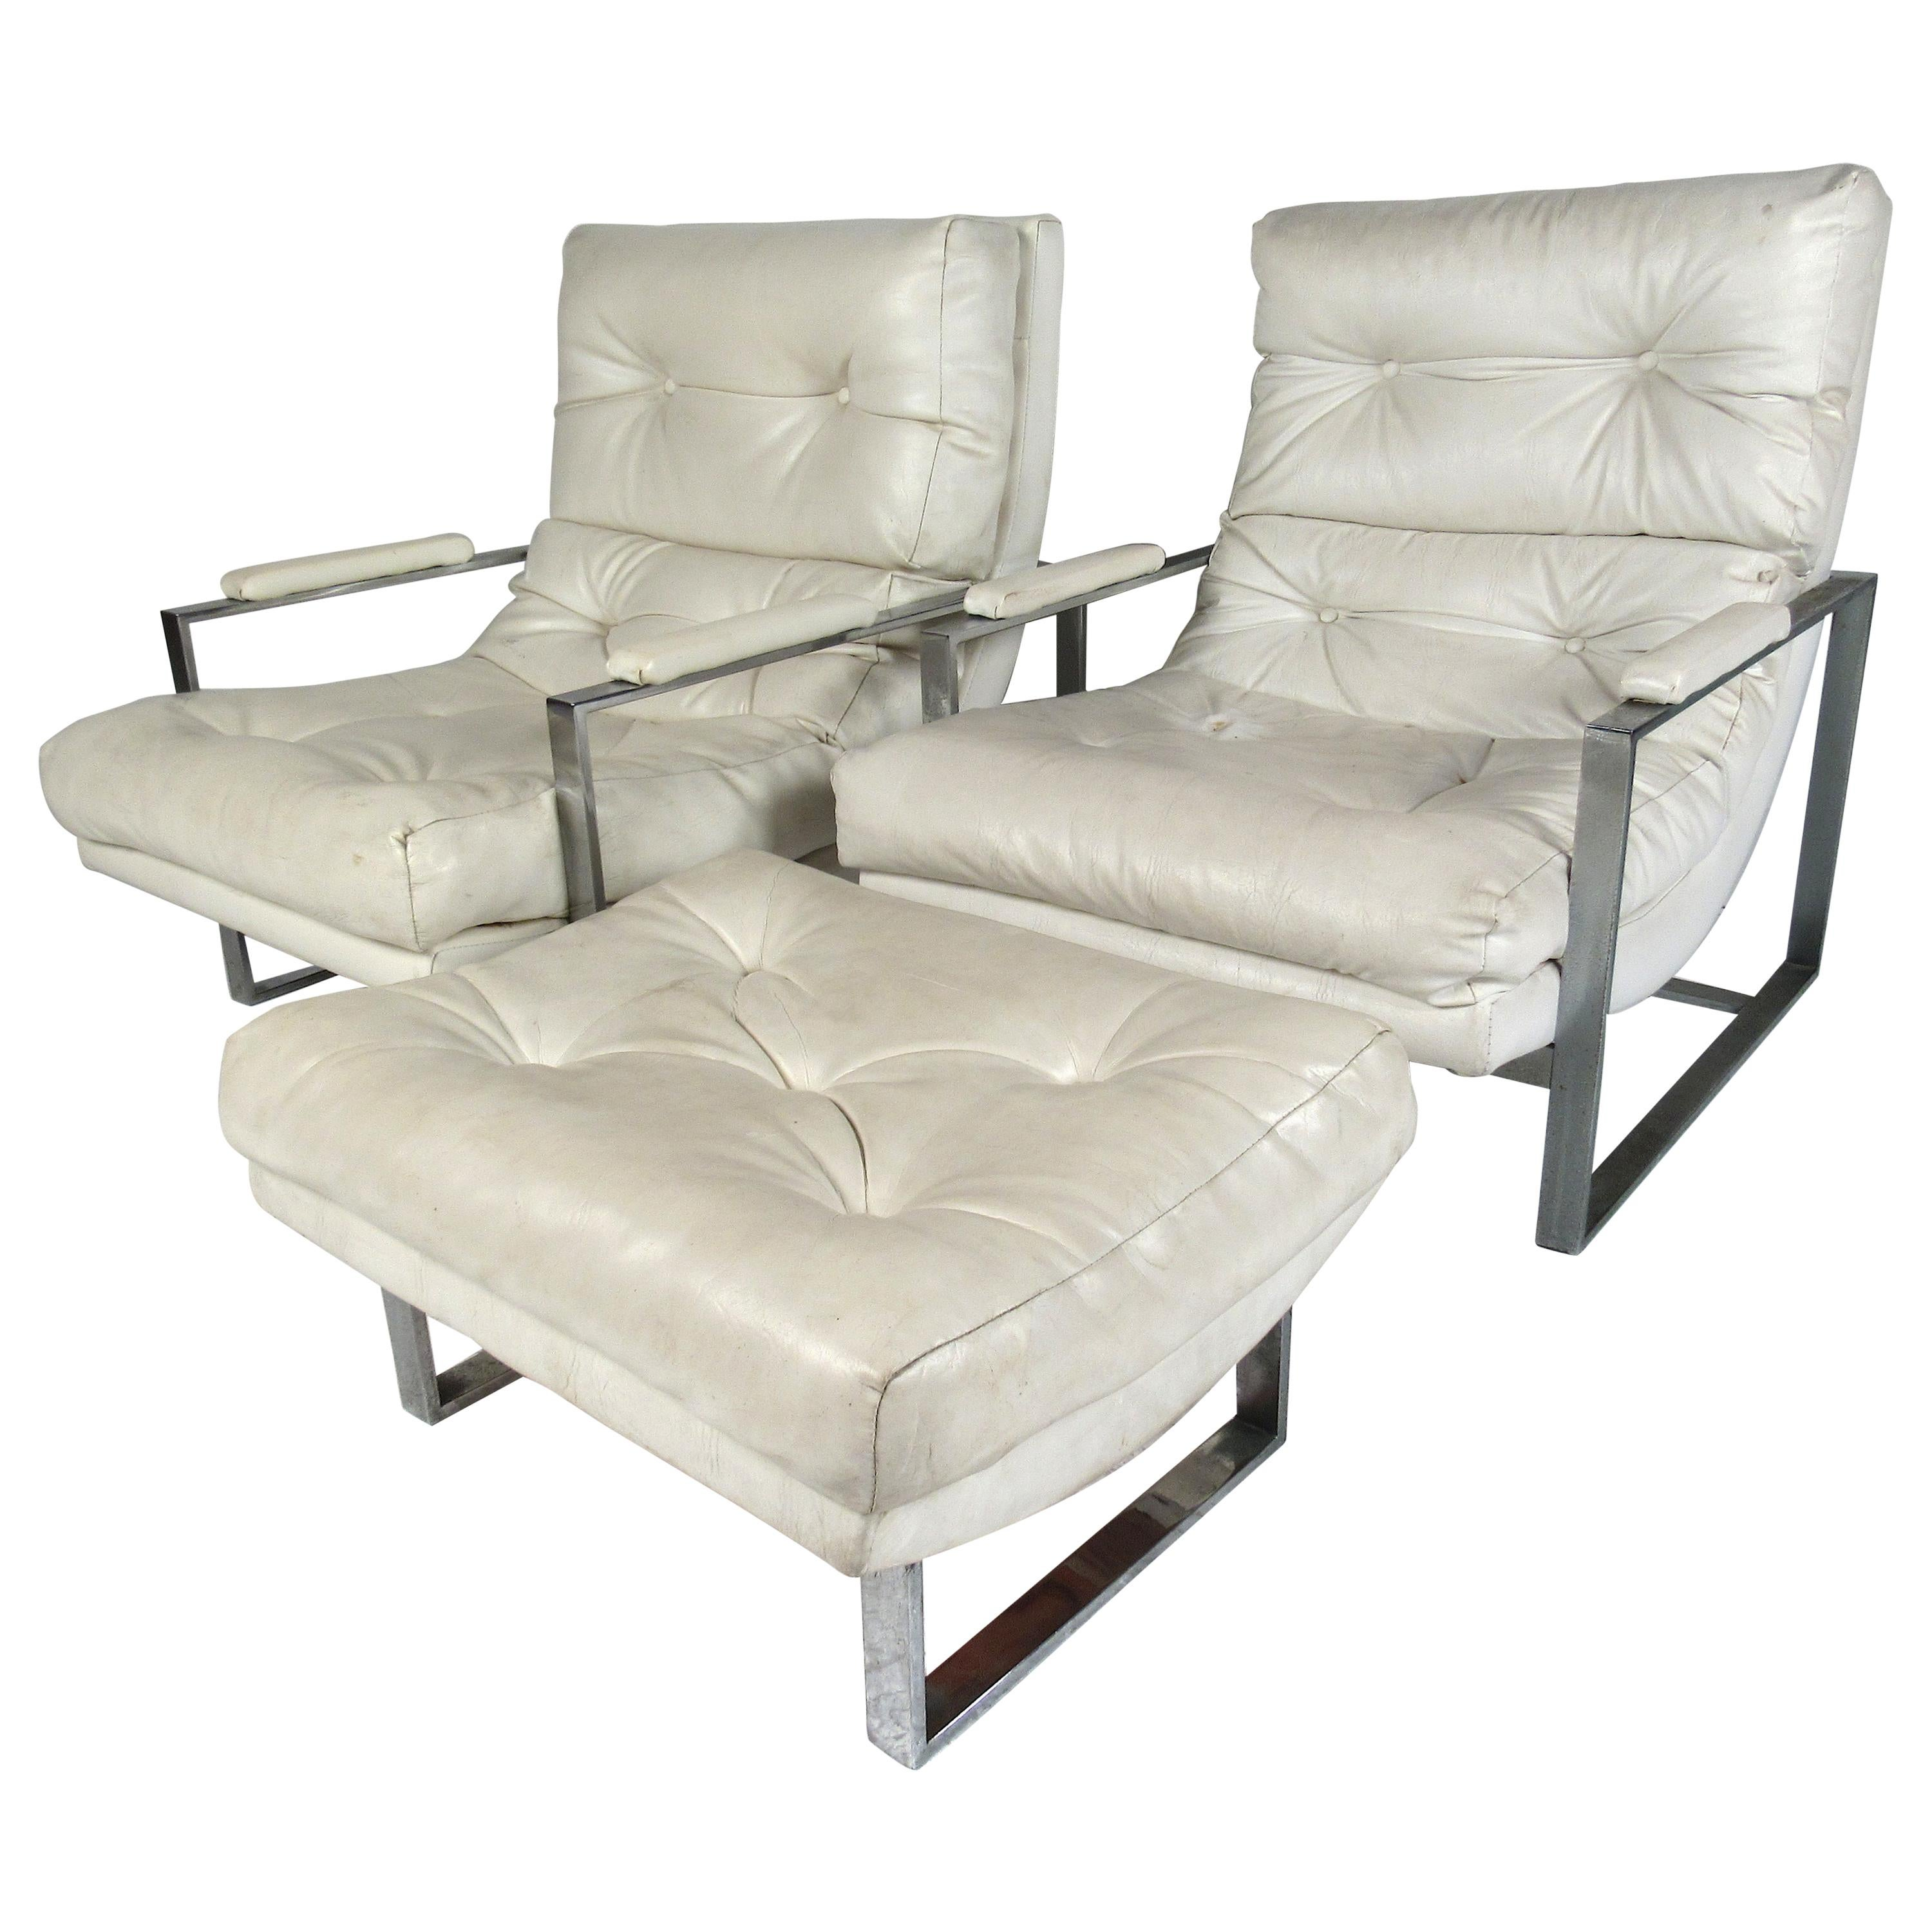 Vintage Pair of Flat Bar Chrome and Vinyl Lounge Chairs